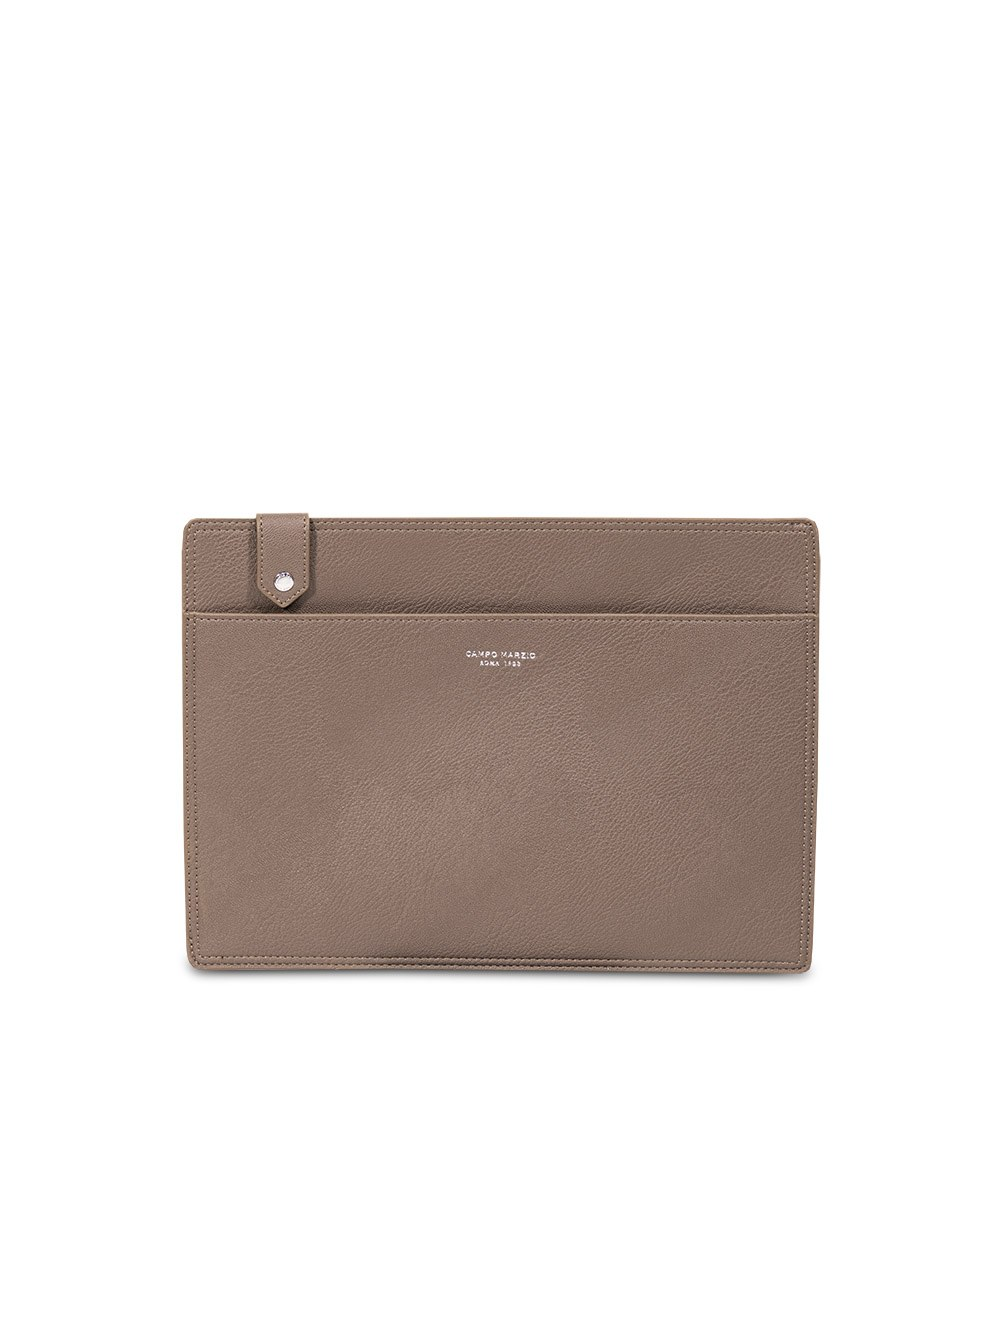 Japanese Document Holder Double Color - Taupe